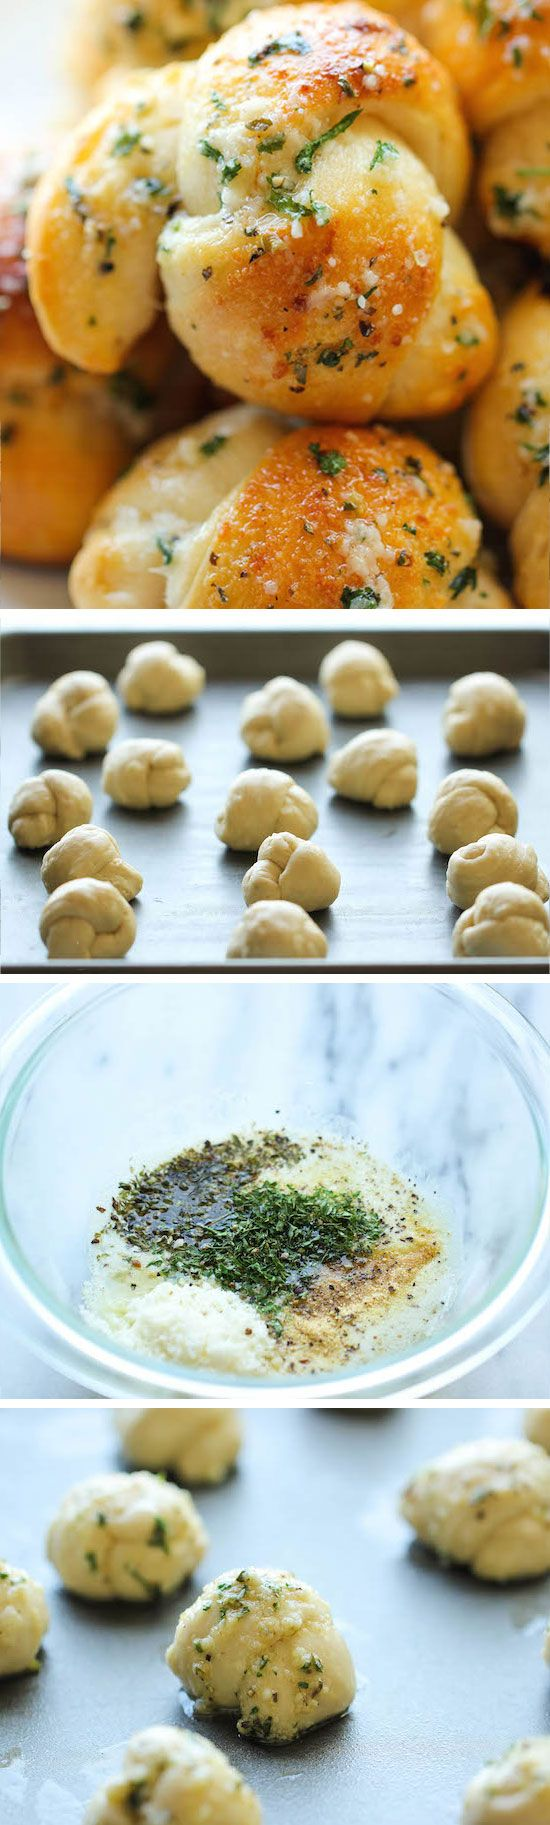 Food Ideas Easter Appetizers And Garlic Parmesan Knots On